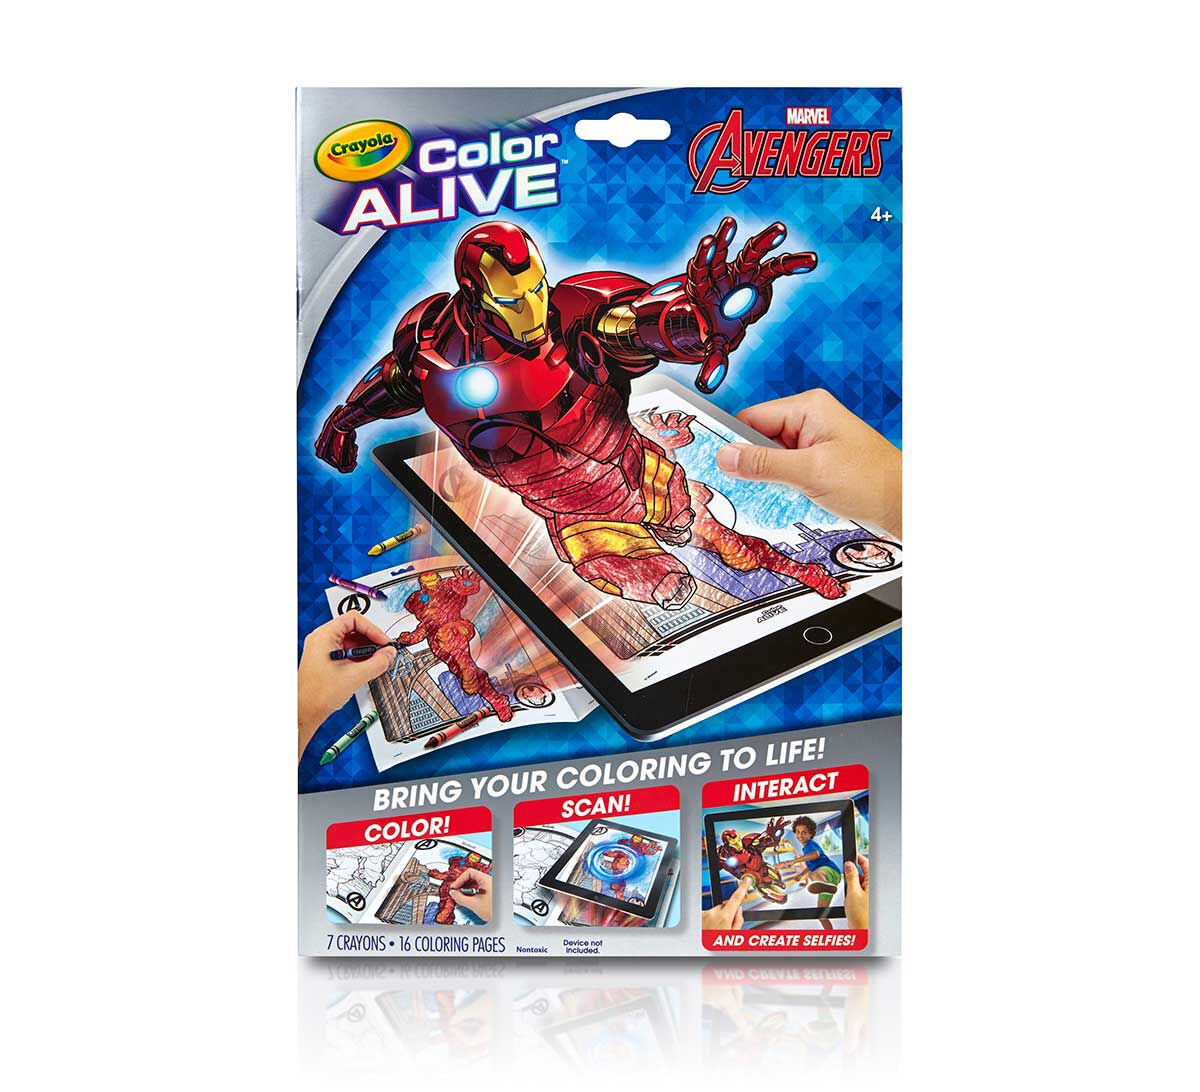 Online coloring for 3 year olds - Color Alive Avengers